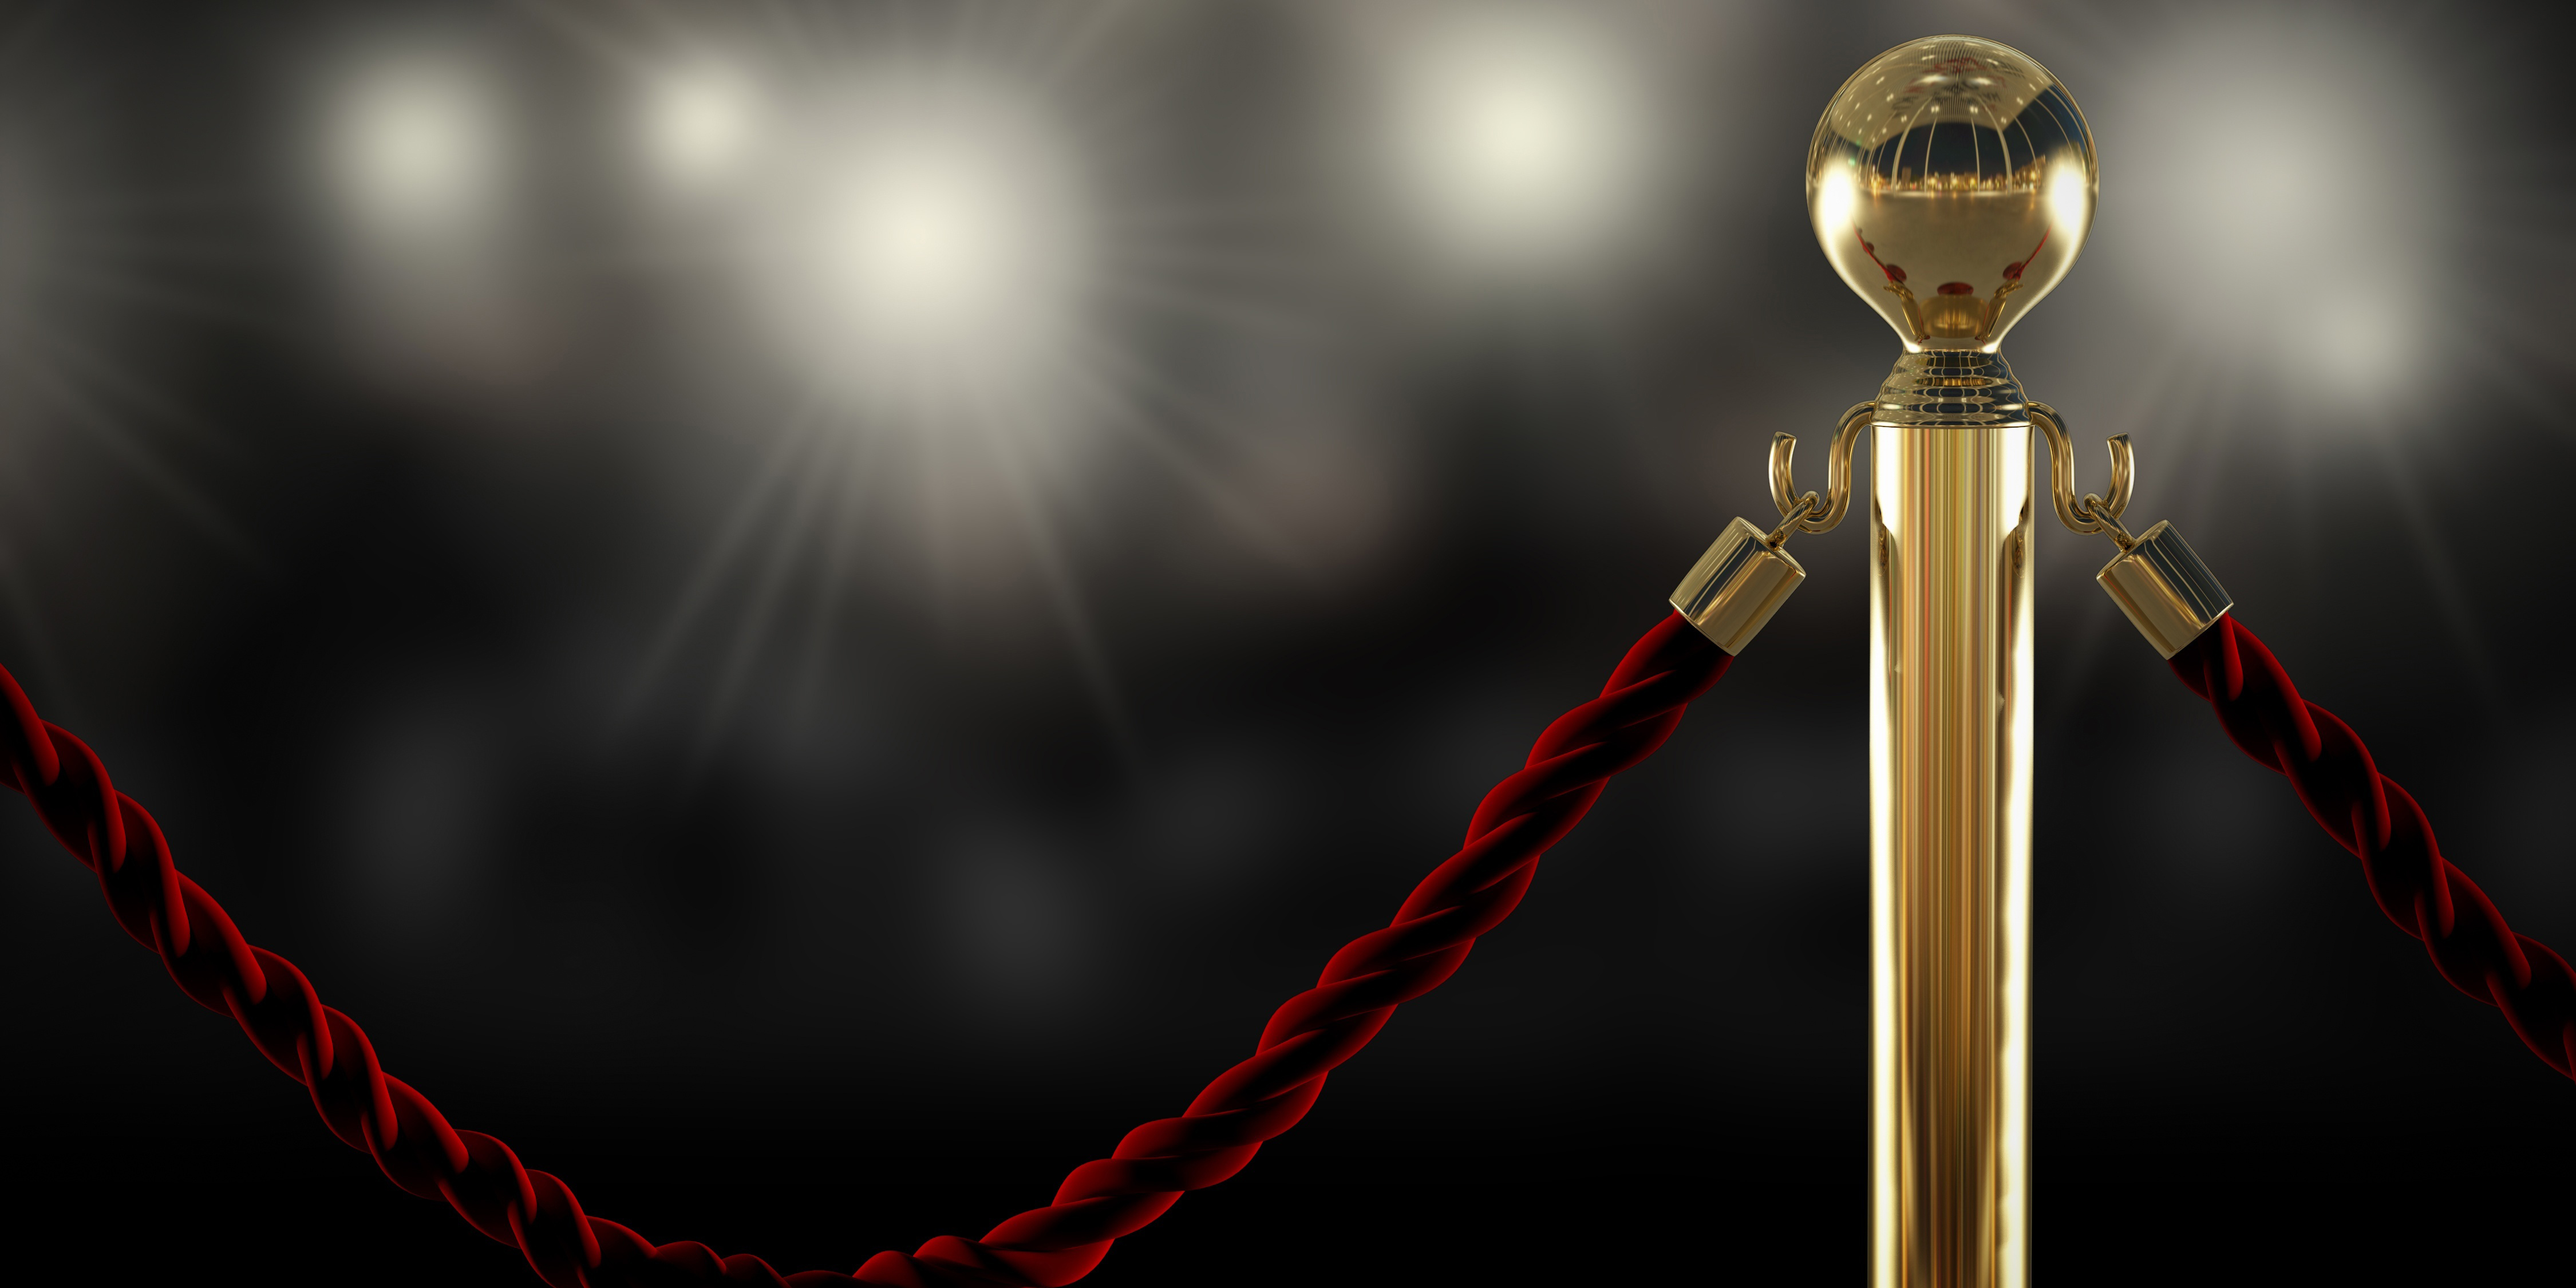 Red rope attached to gold pole with lights in the background